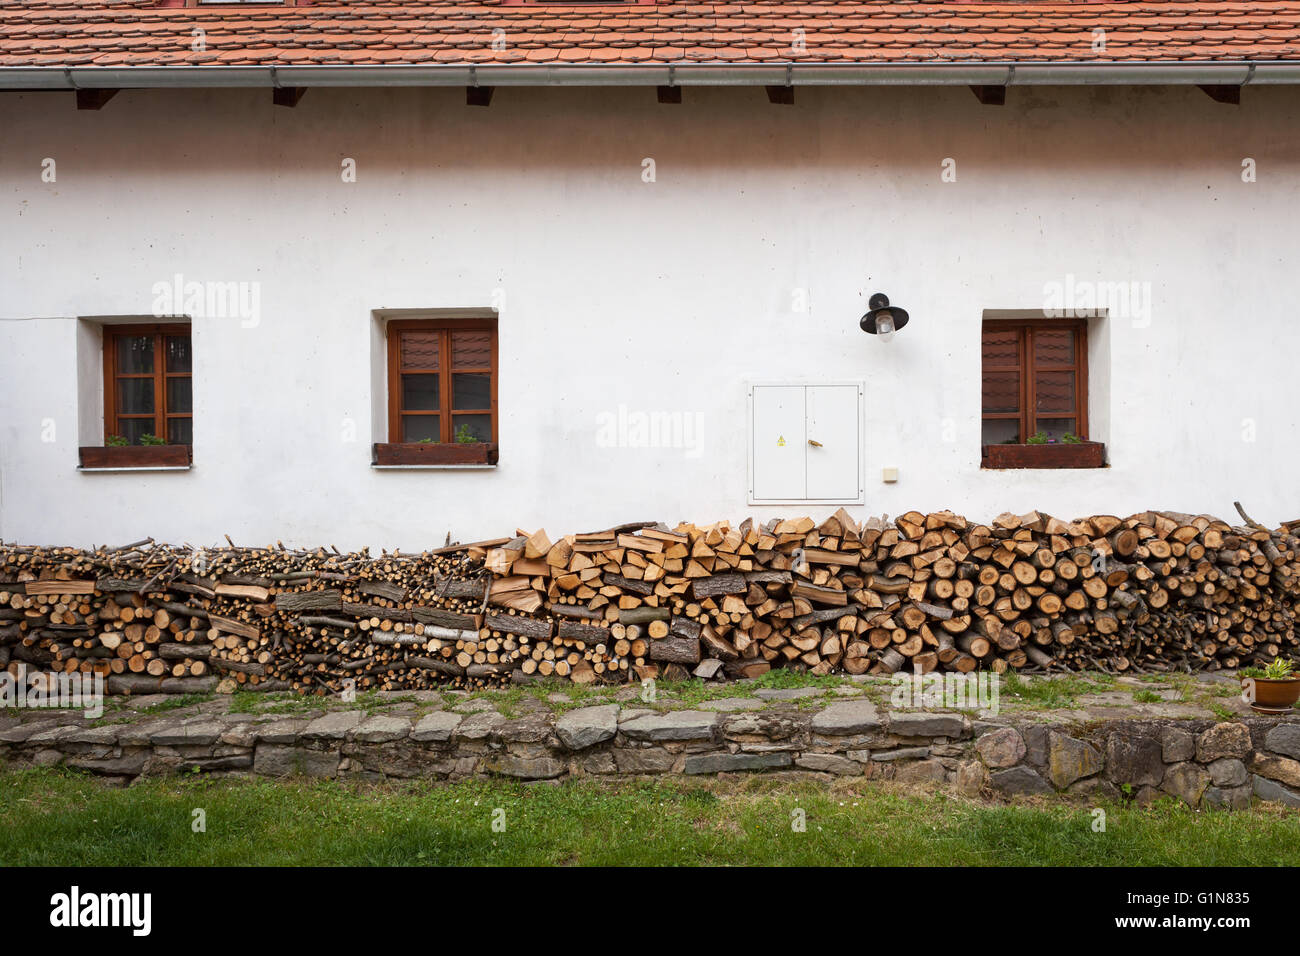 Chopped firewood piles against the side of a rural building - Stock Image